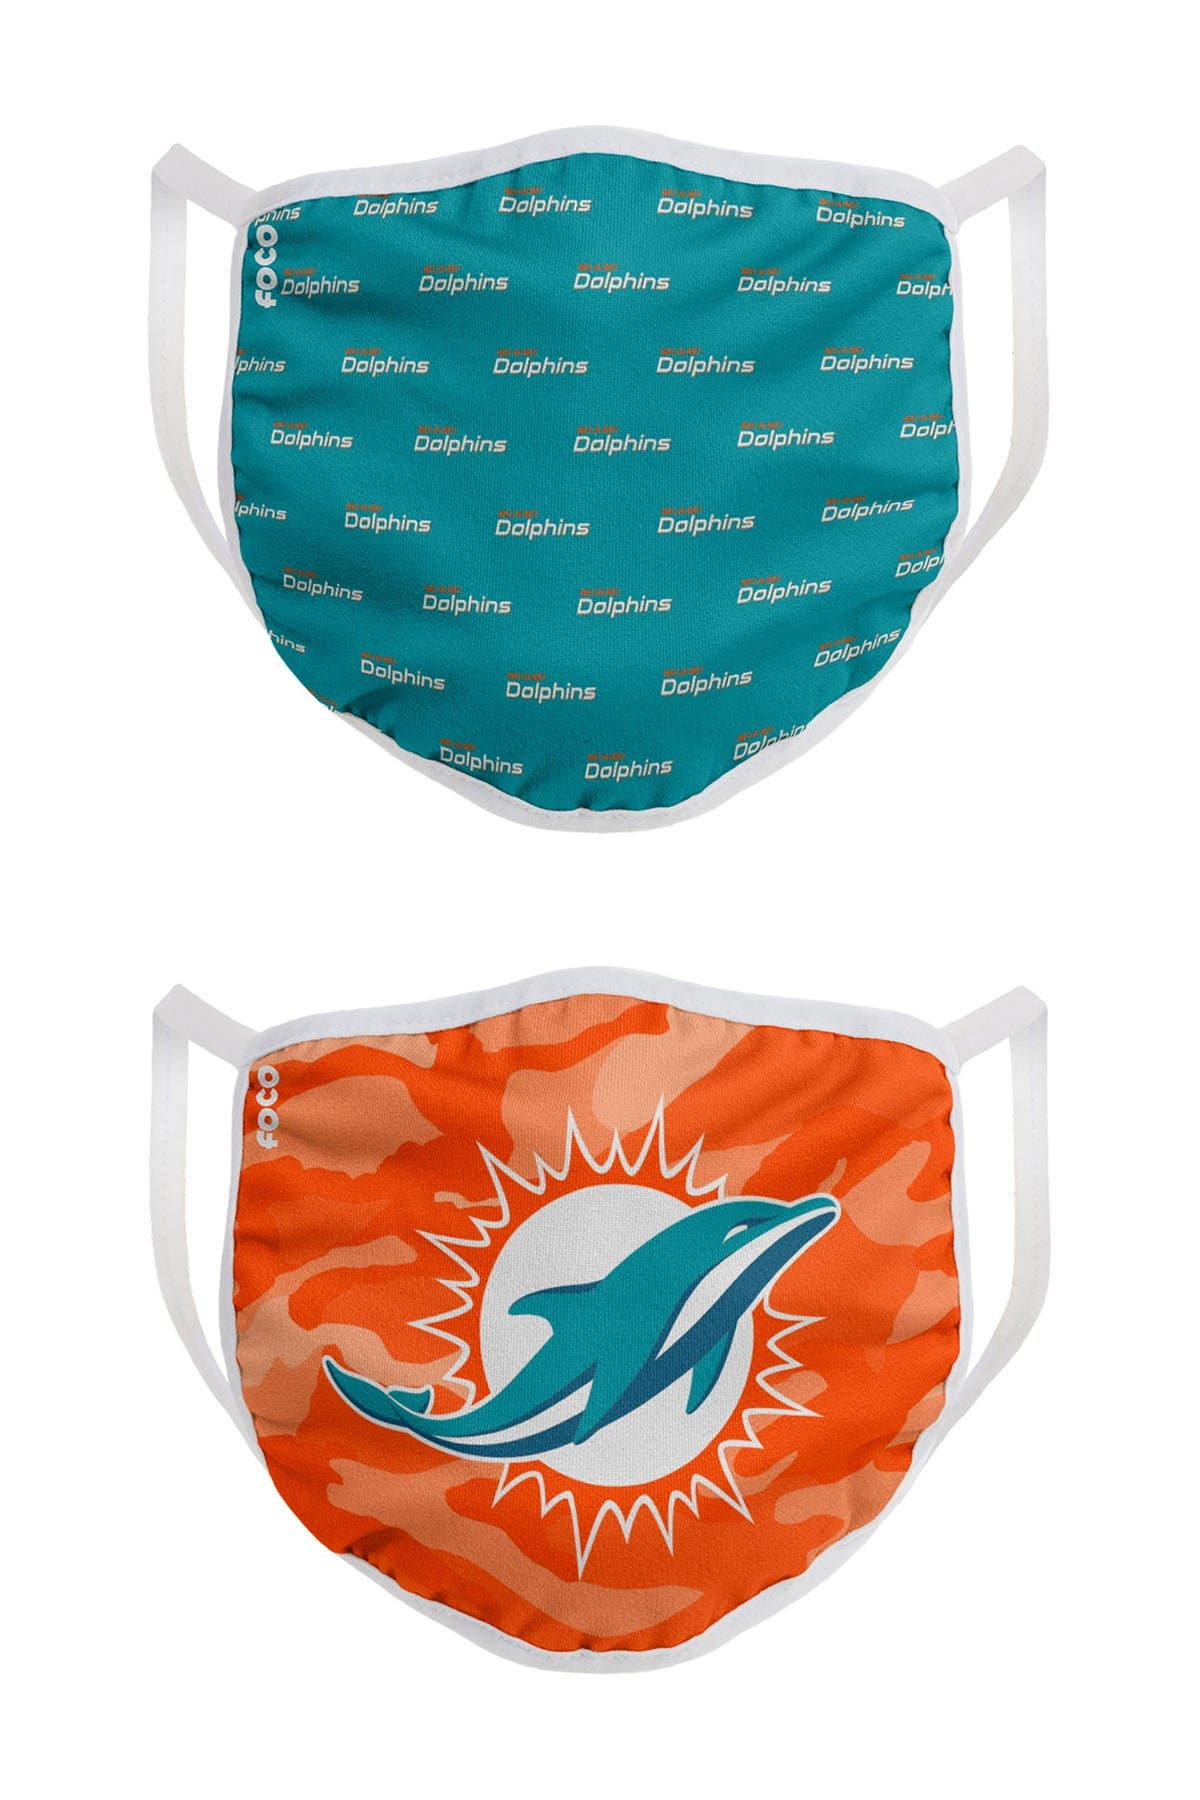 Image of FOCO NFL Miami Dolphins Clutch Printed Face Cover - Pack of 2